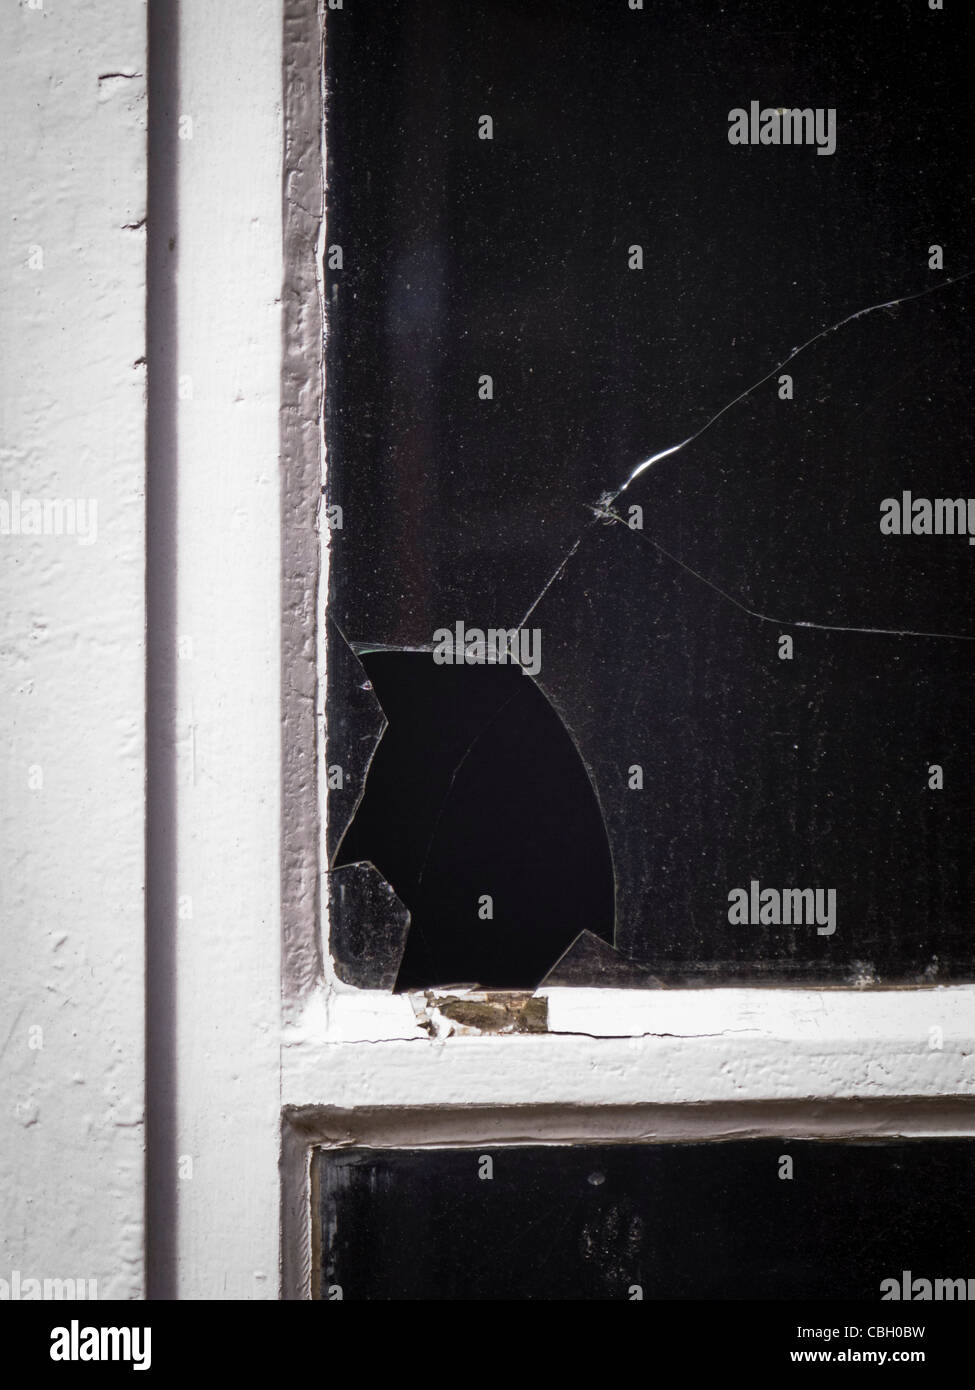 Broken window pane - Stock Image